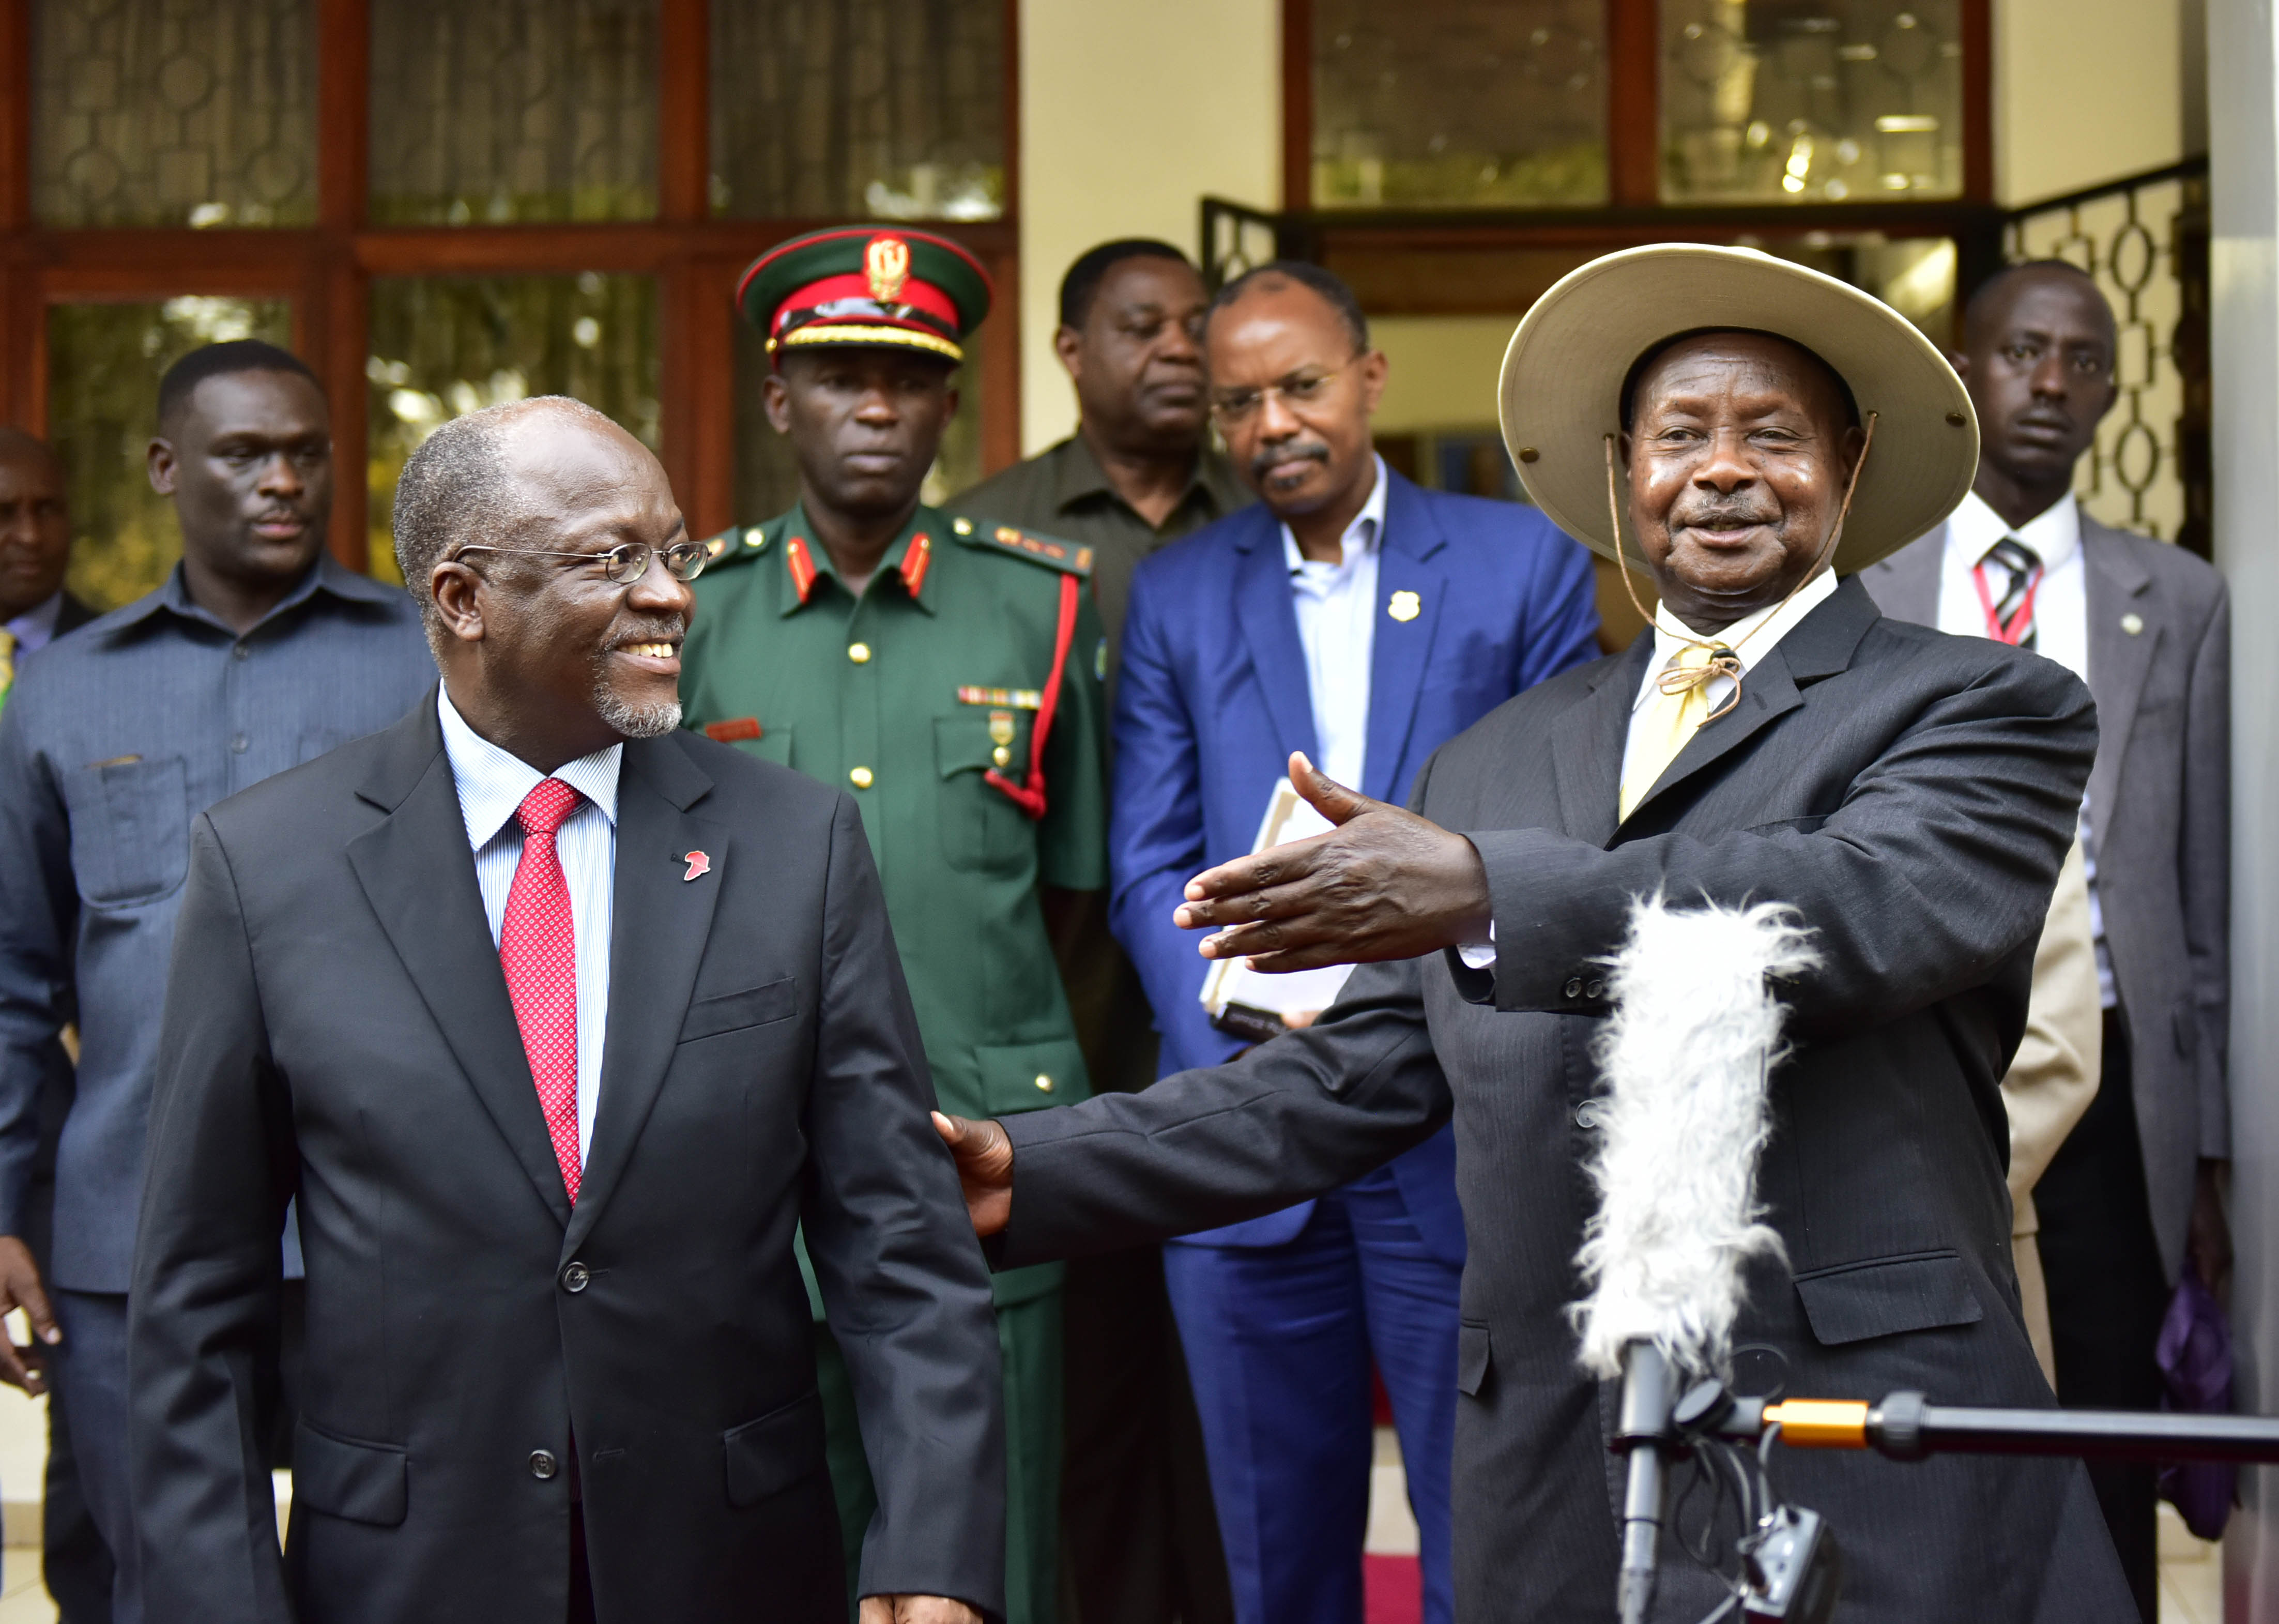 The President Yoweri Kaguta Musevenio interacts with Tanzanian President John Pombe Magufuli shortly after the bilateral meeting at the Arusha state lodge in Tanzania on Tuesday 30th February 2016. President Museveni together with the East African Heads of State are meeting in Arusha for the 17th Ordinary Summit.